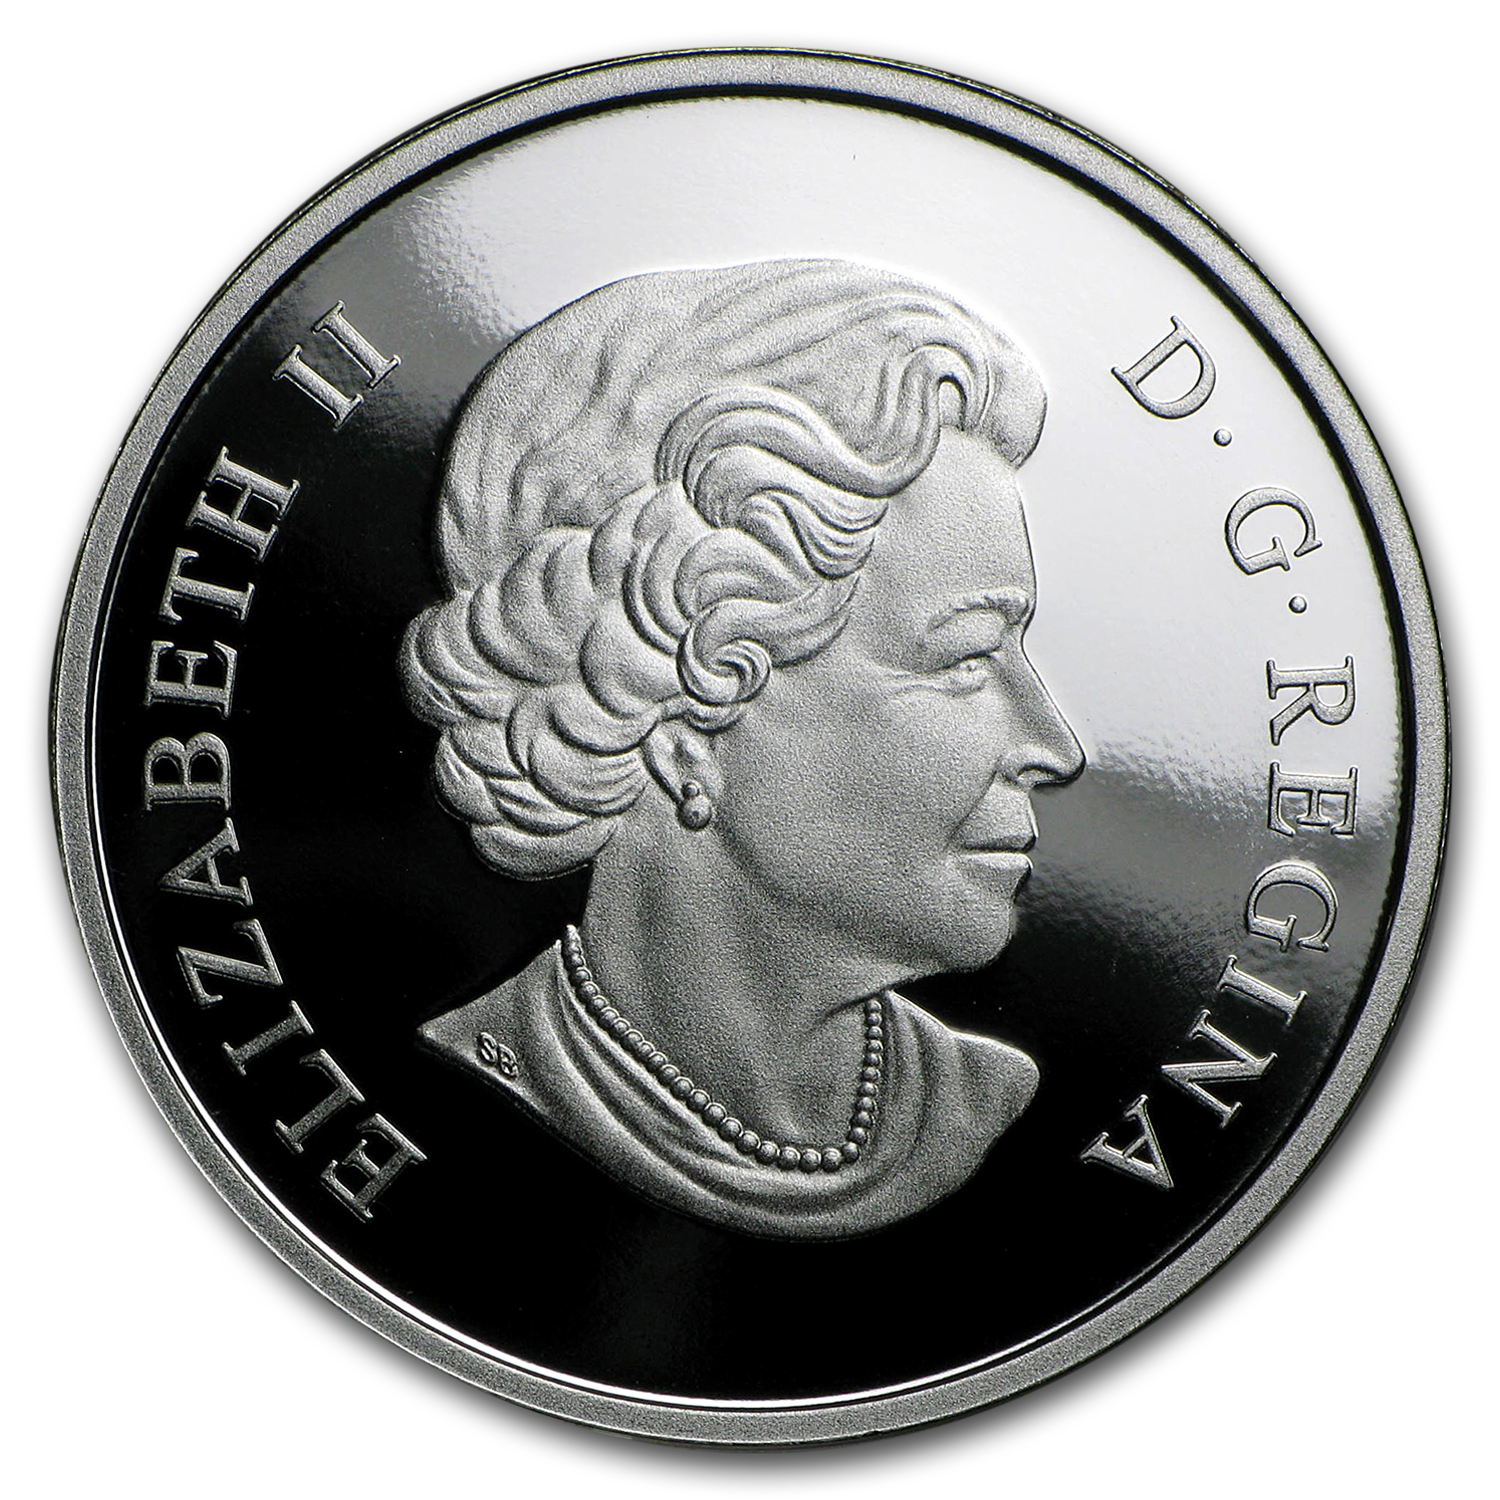 2012 Canada 1 oz Silver $20 The Queen's Diamond Jubilee (UHR)